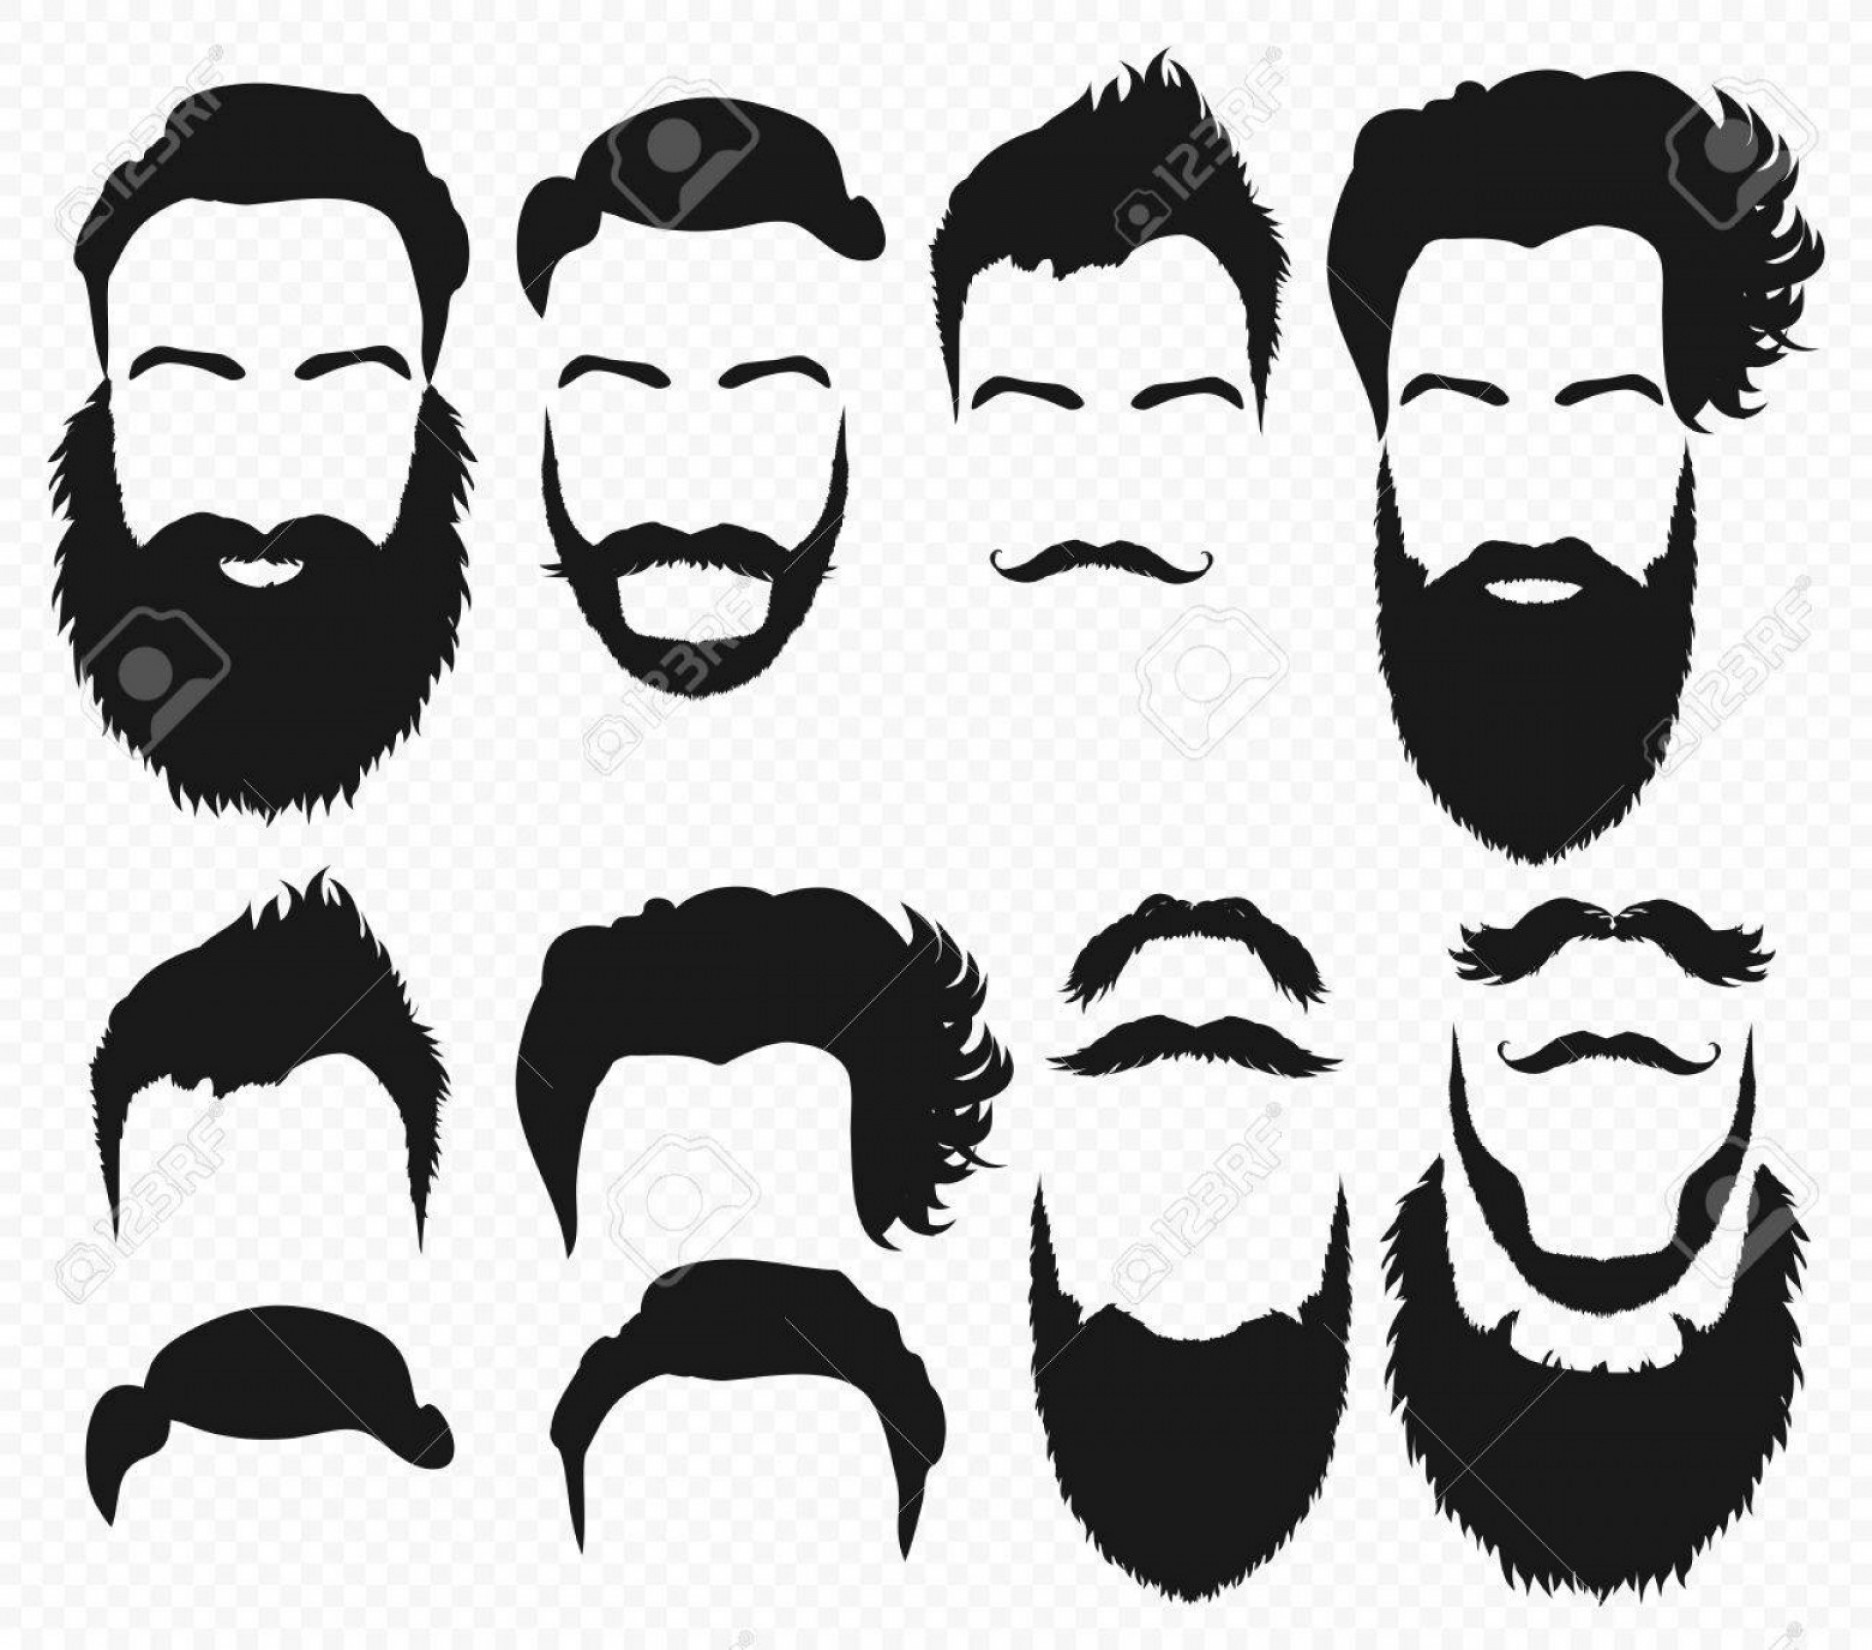 Vector Constructor: Photostock Vector Vector Hair And Beard Shapes Design Constructor With Men Vector Silhouette Fashion Silhouette Black